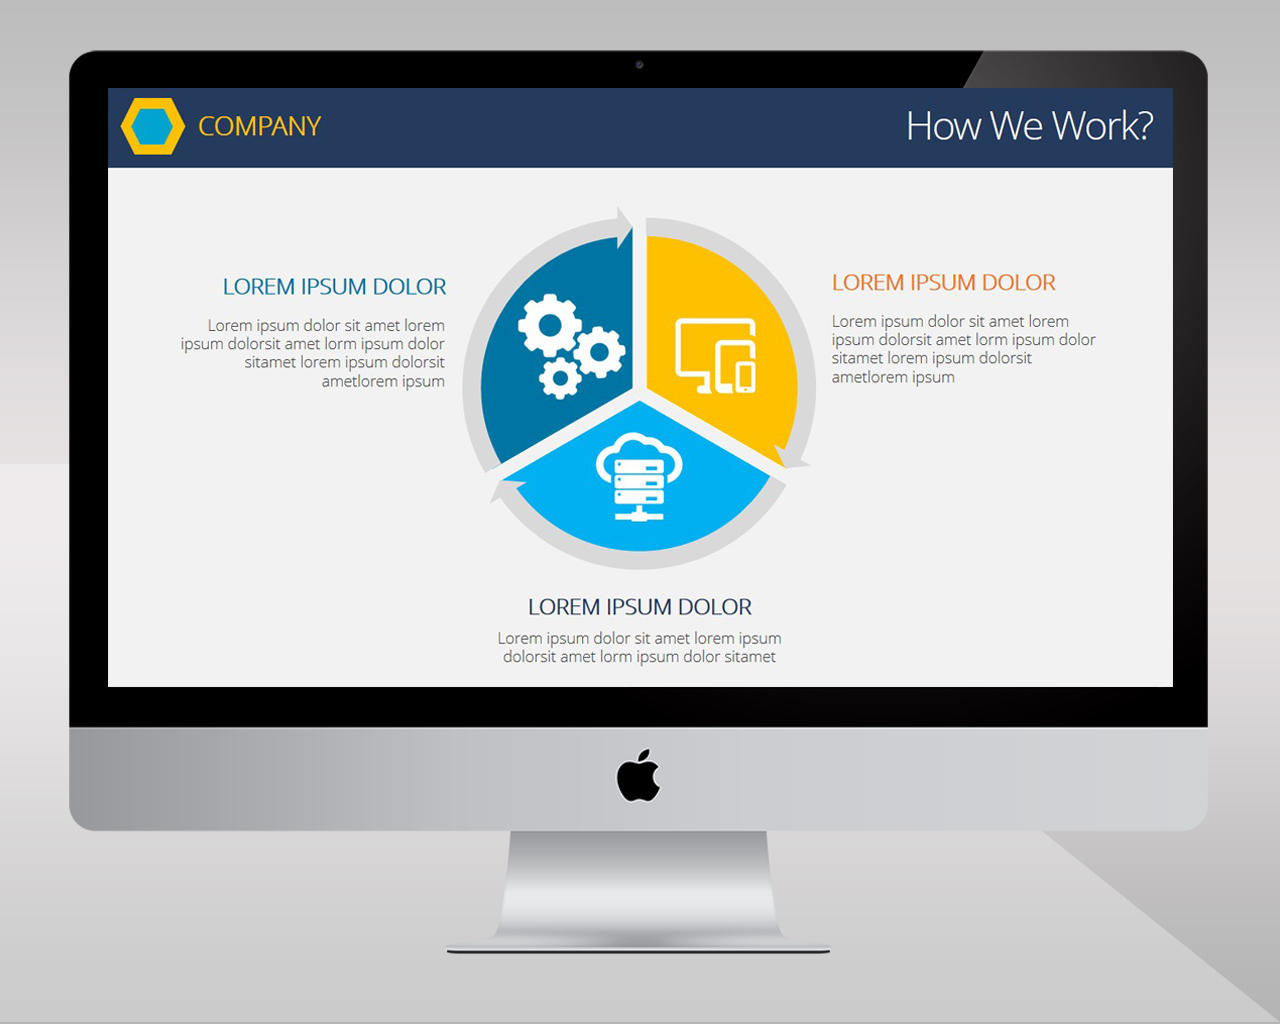 Modern and CREATIVE Power Point presentations by design_kd - 91693